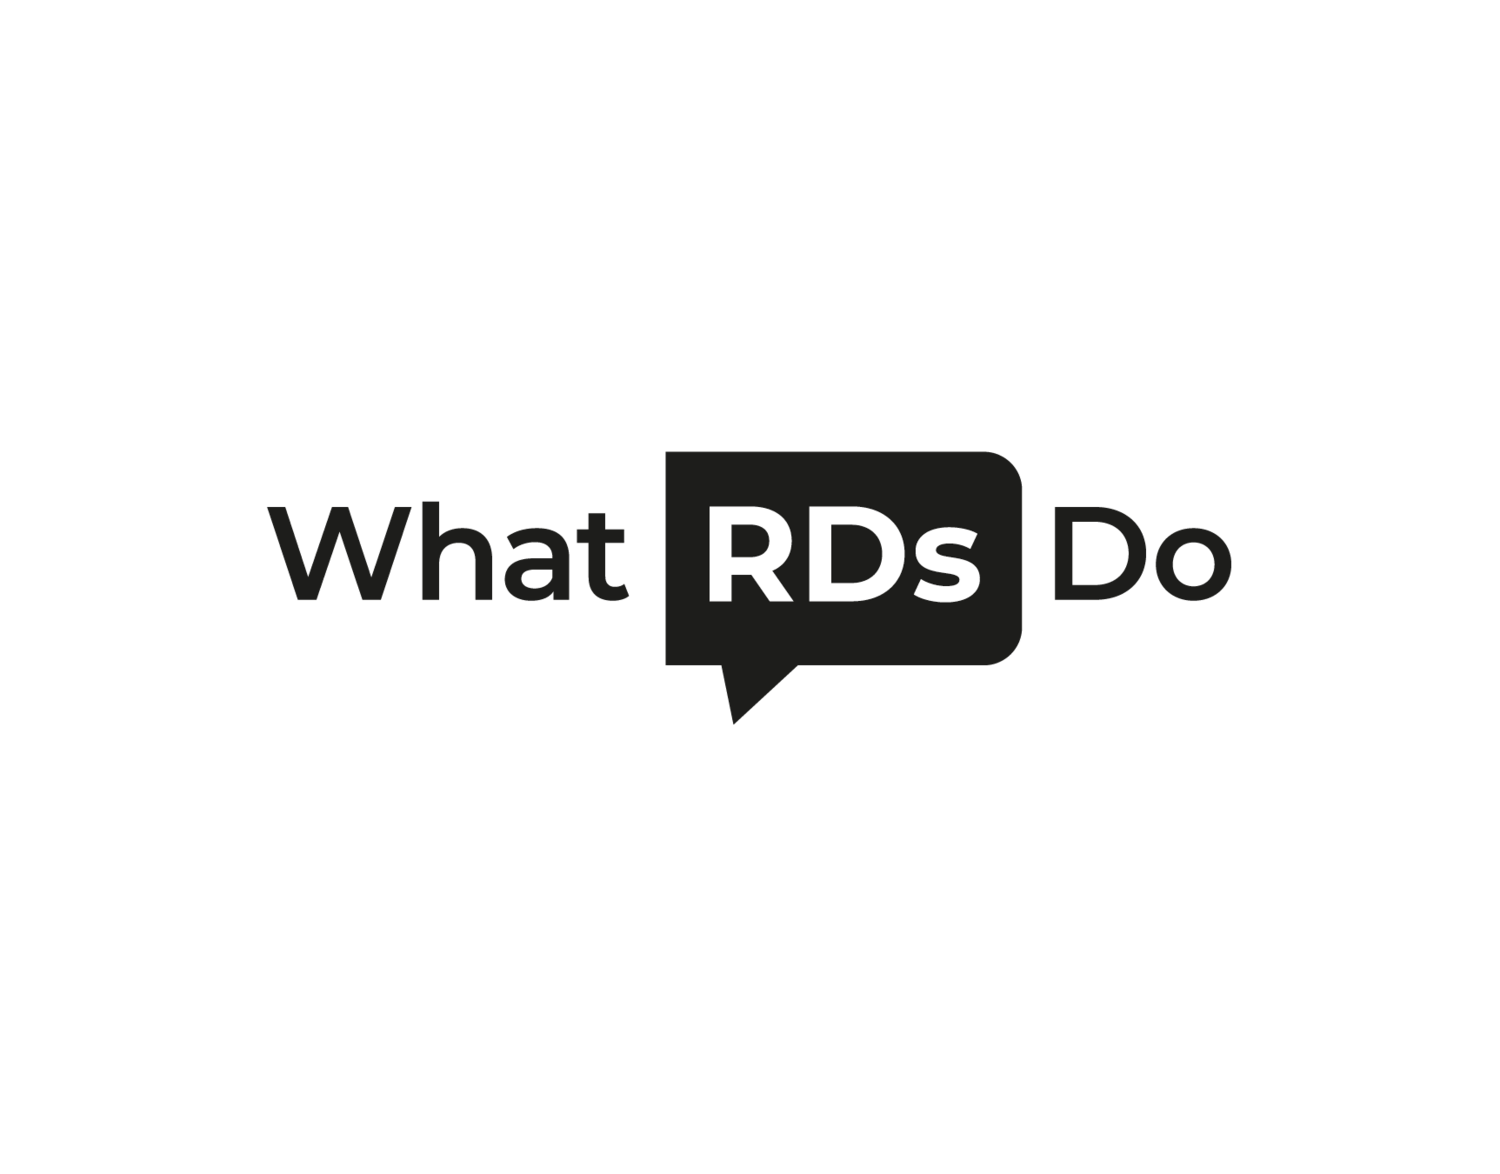 What RDs Do logo